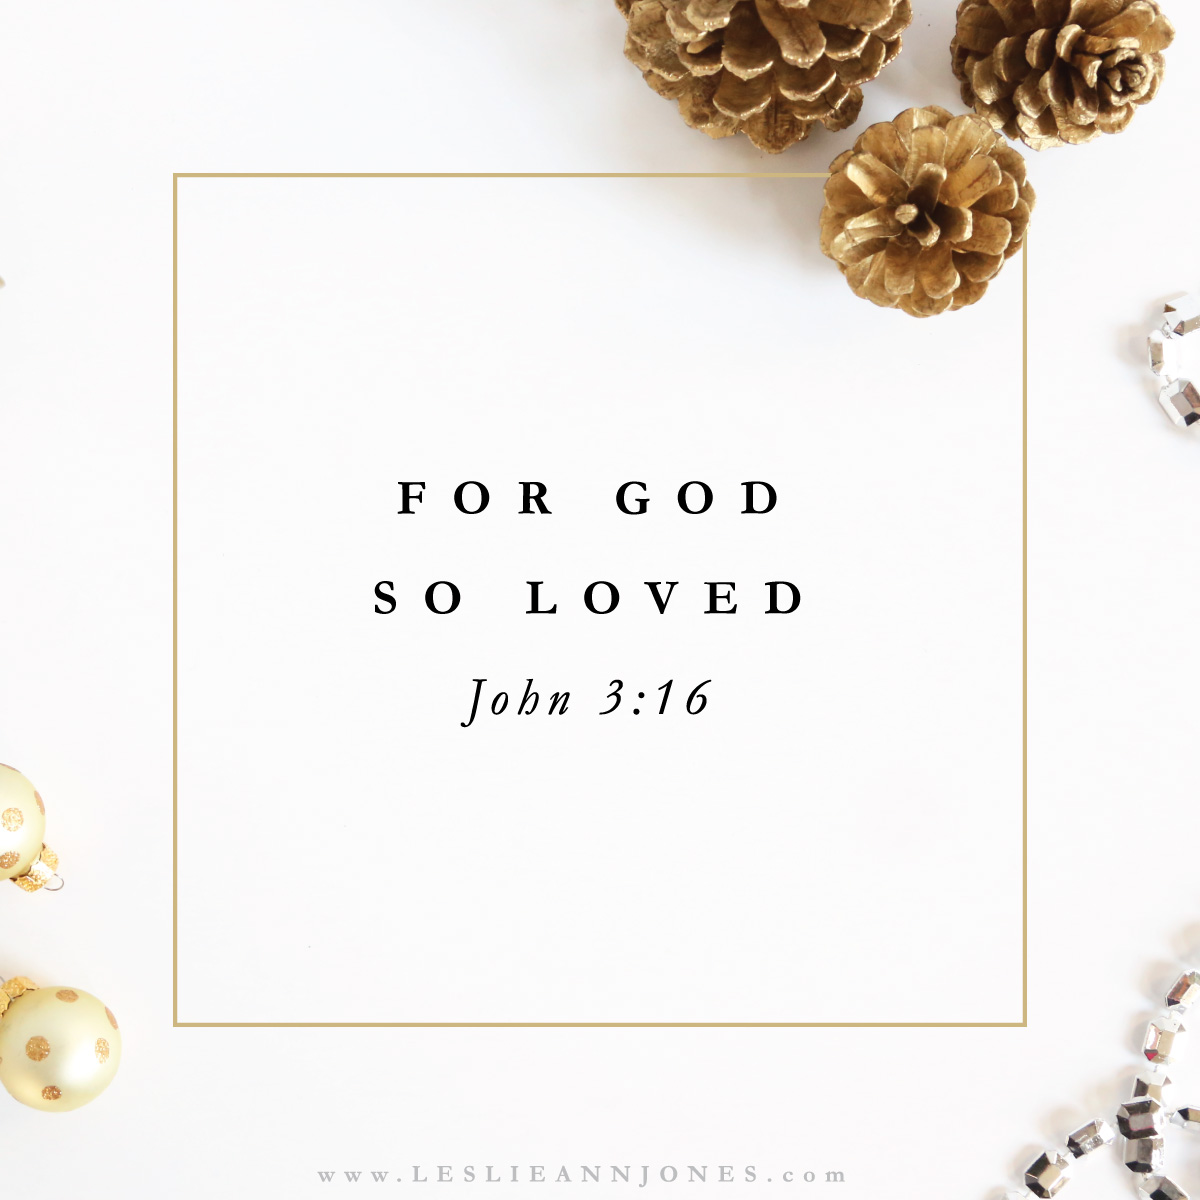 Love Came Down. An Advent devotion from Leslie Ann Jones.